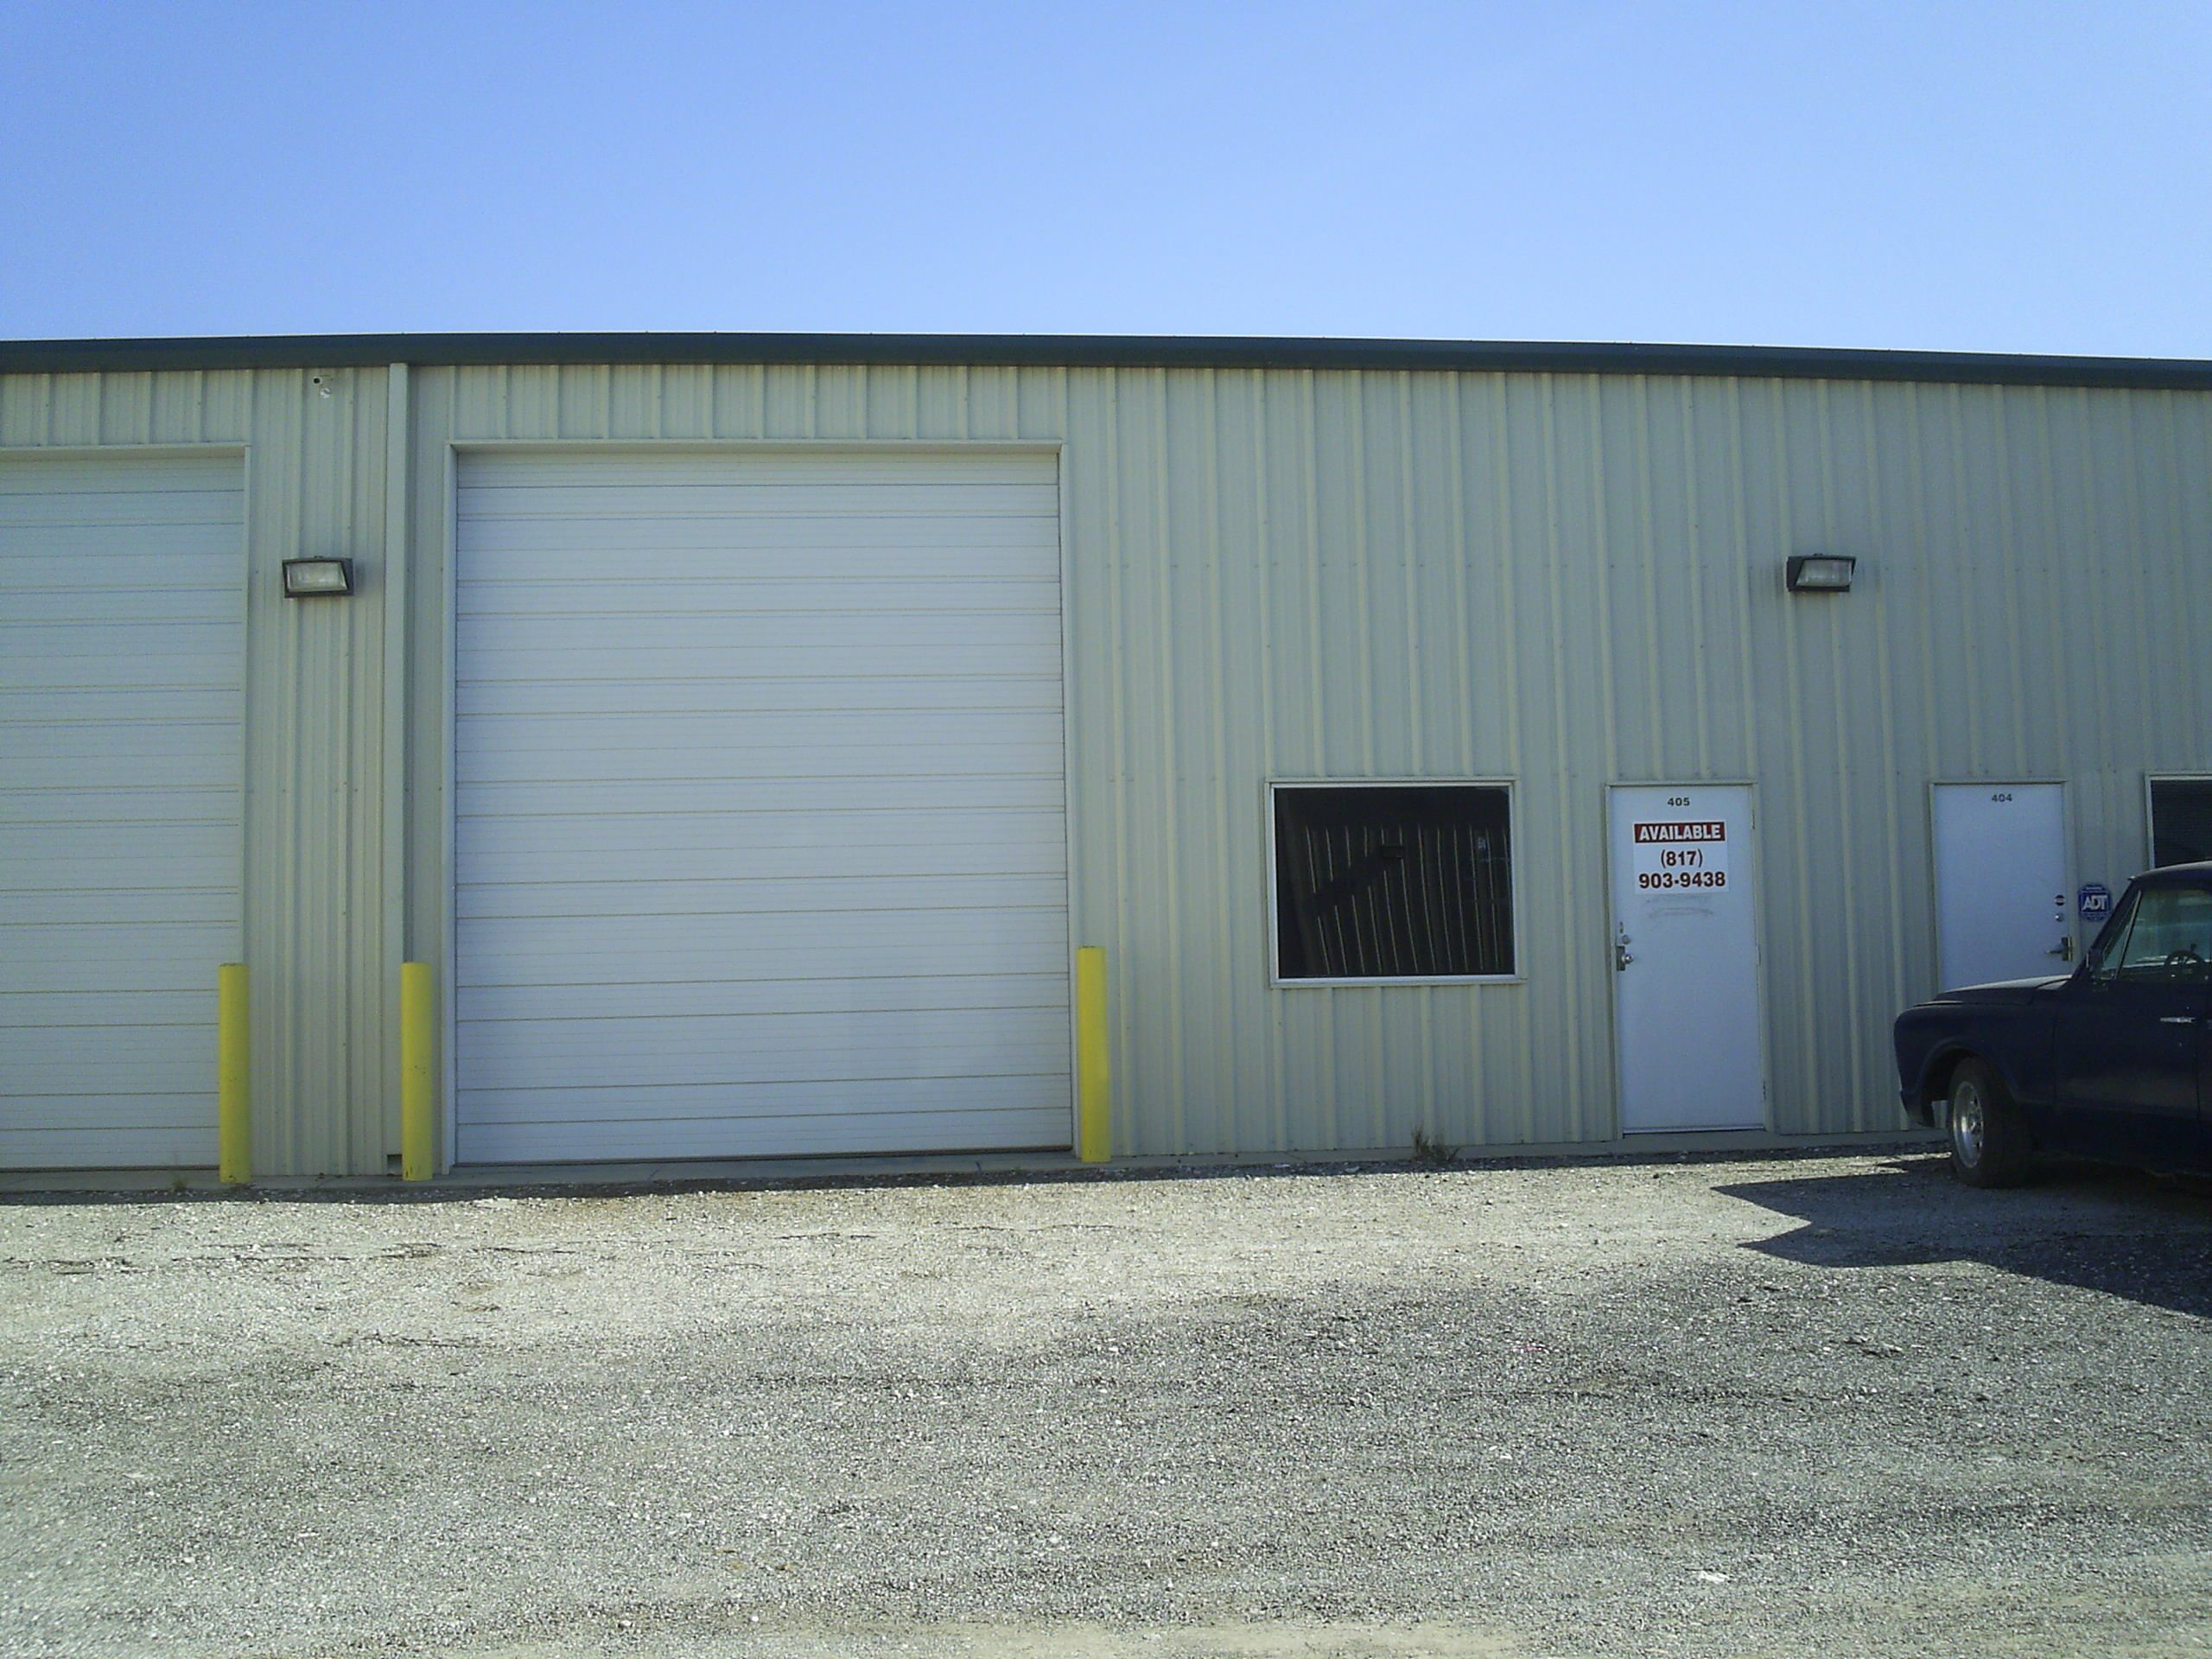 Garage For Rent Near Me Http Undhimmi Com Garage For Rent Near Me 4136 10 12 Html Self Storage Garage Rent